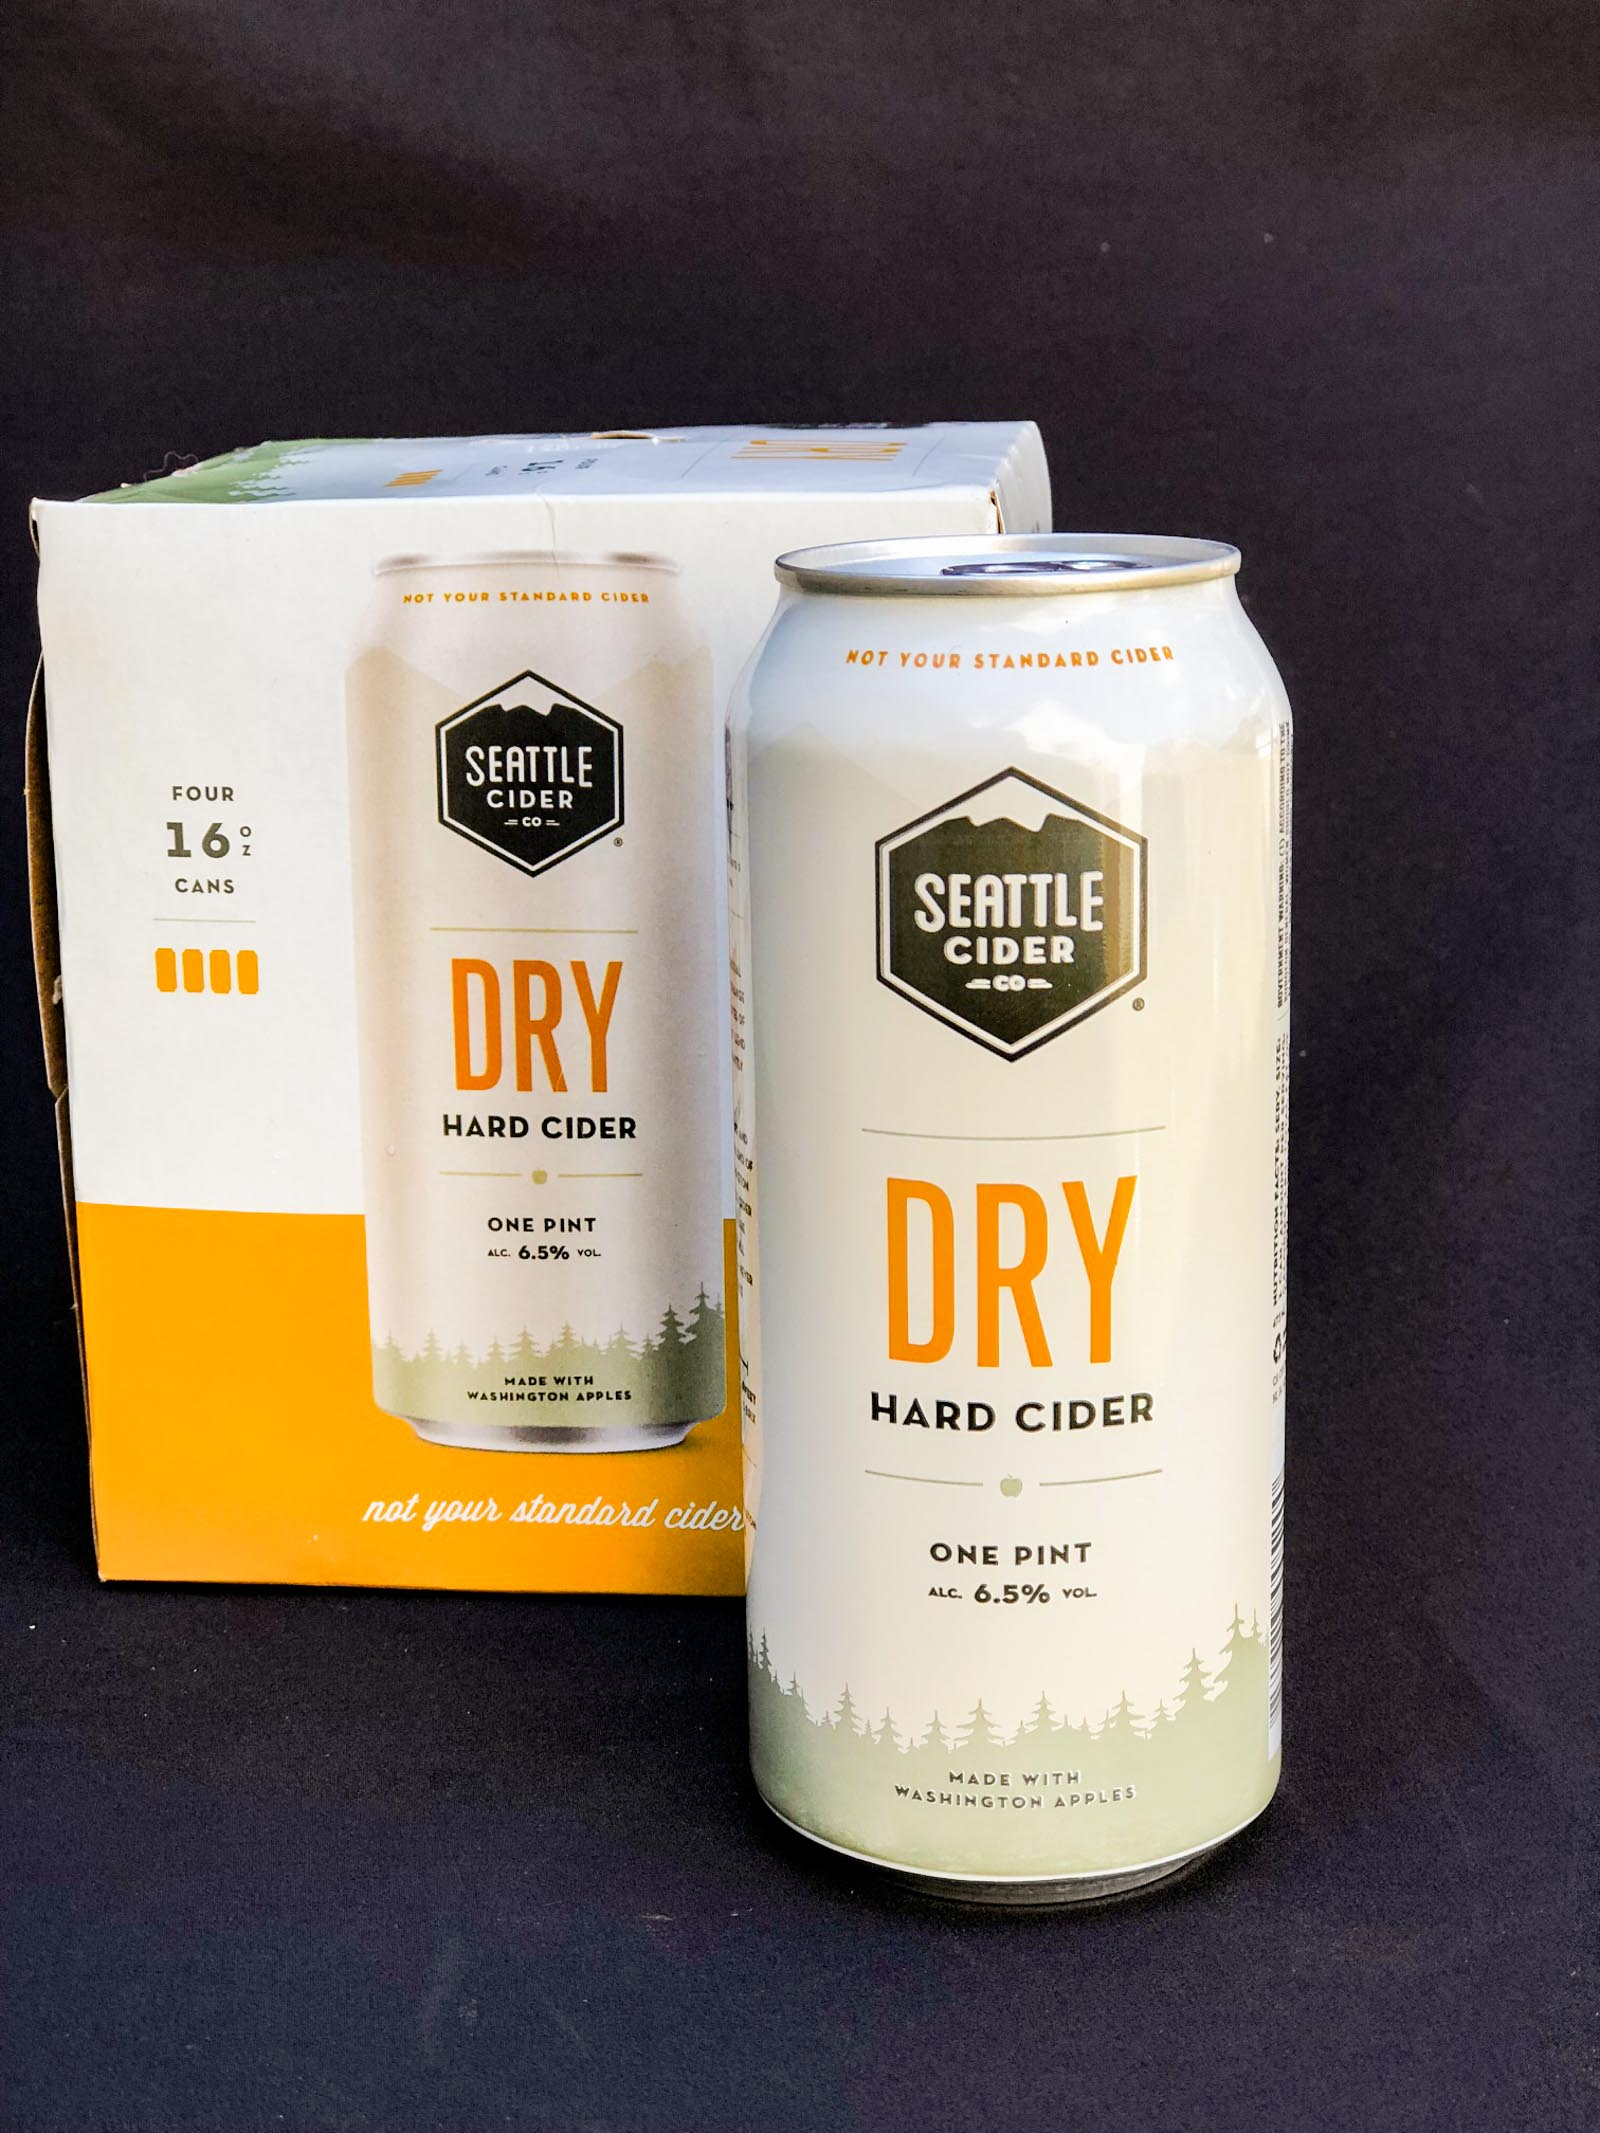 Buy Seattle Cider Dry Online